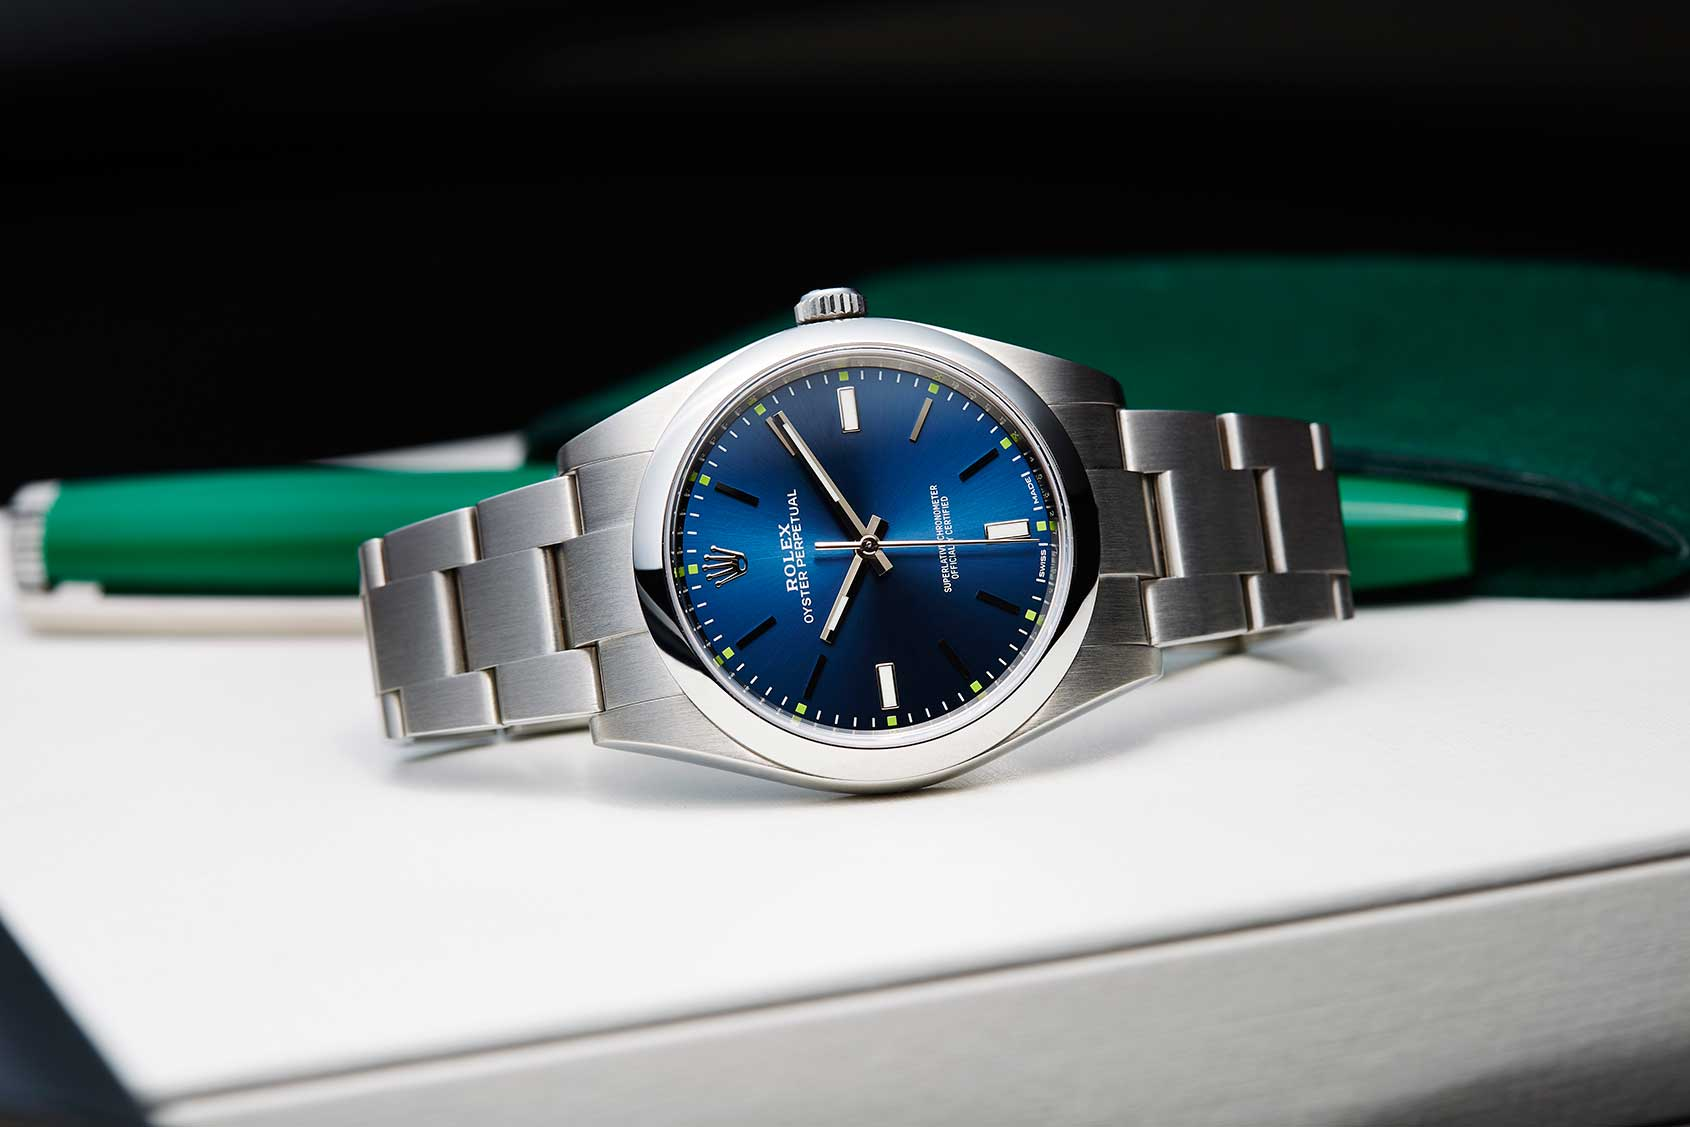 de54ebf3793 The Perfect Rolex Oyster Perpetual 39 Review - How To Find Best ...